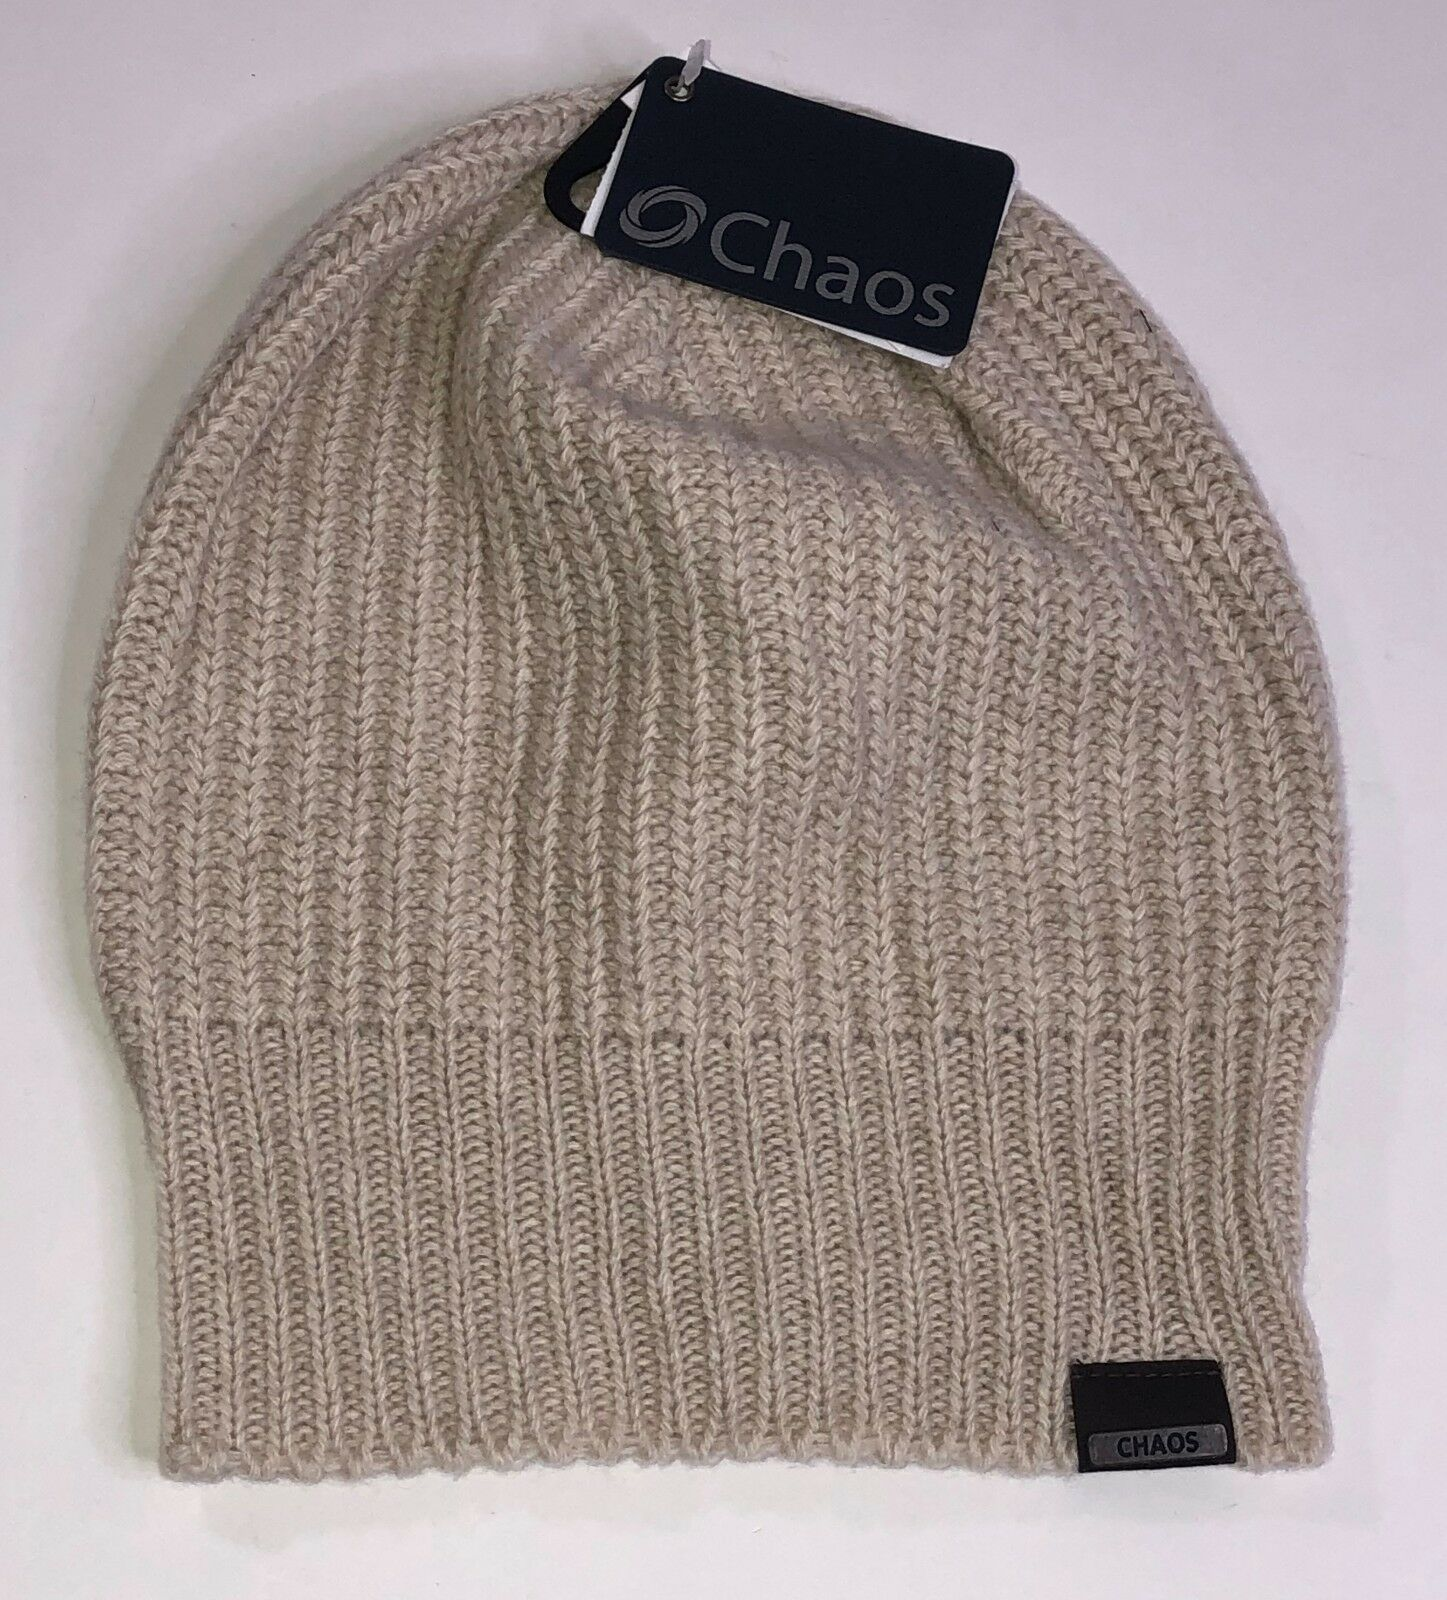 Chaos Marberry Cashmere Beanie Natural Beige color Hat One Size NEW w Tags